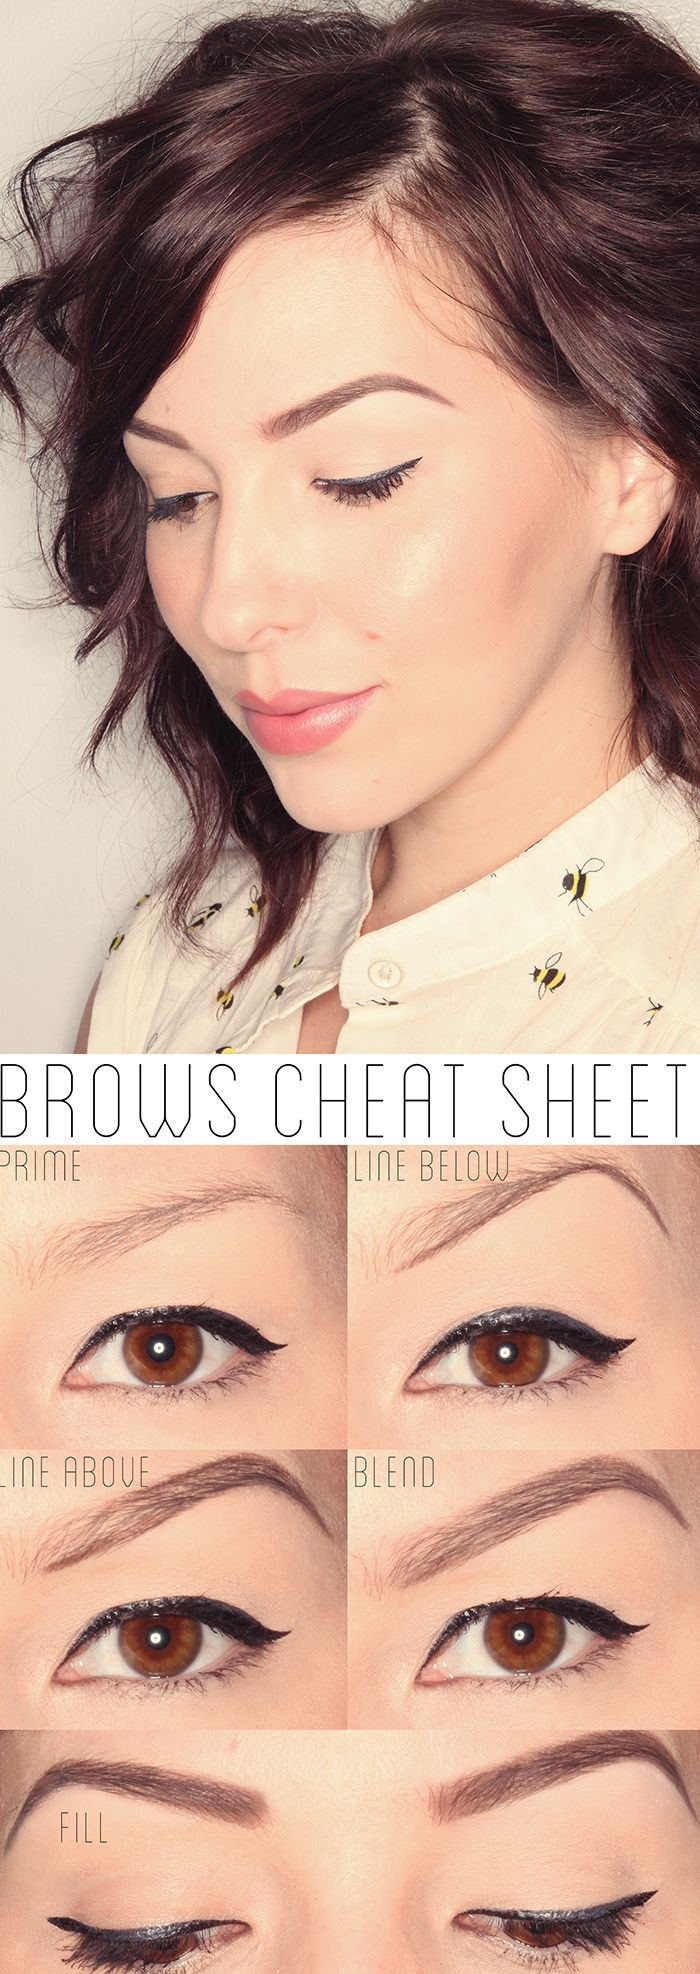 I always think I look like Bert when I do my brows but after seeing her before/after I need to rethink my stance on brow filling!: Makeup Monday: How To Get The Perfect Brows (Full Tutorial)